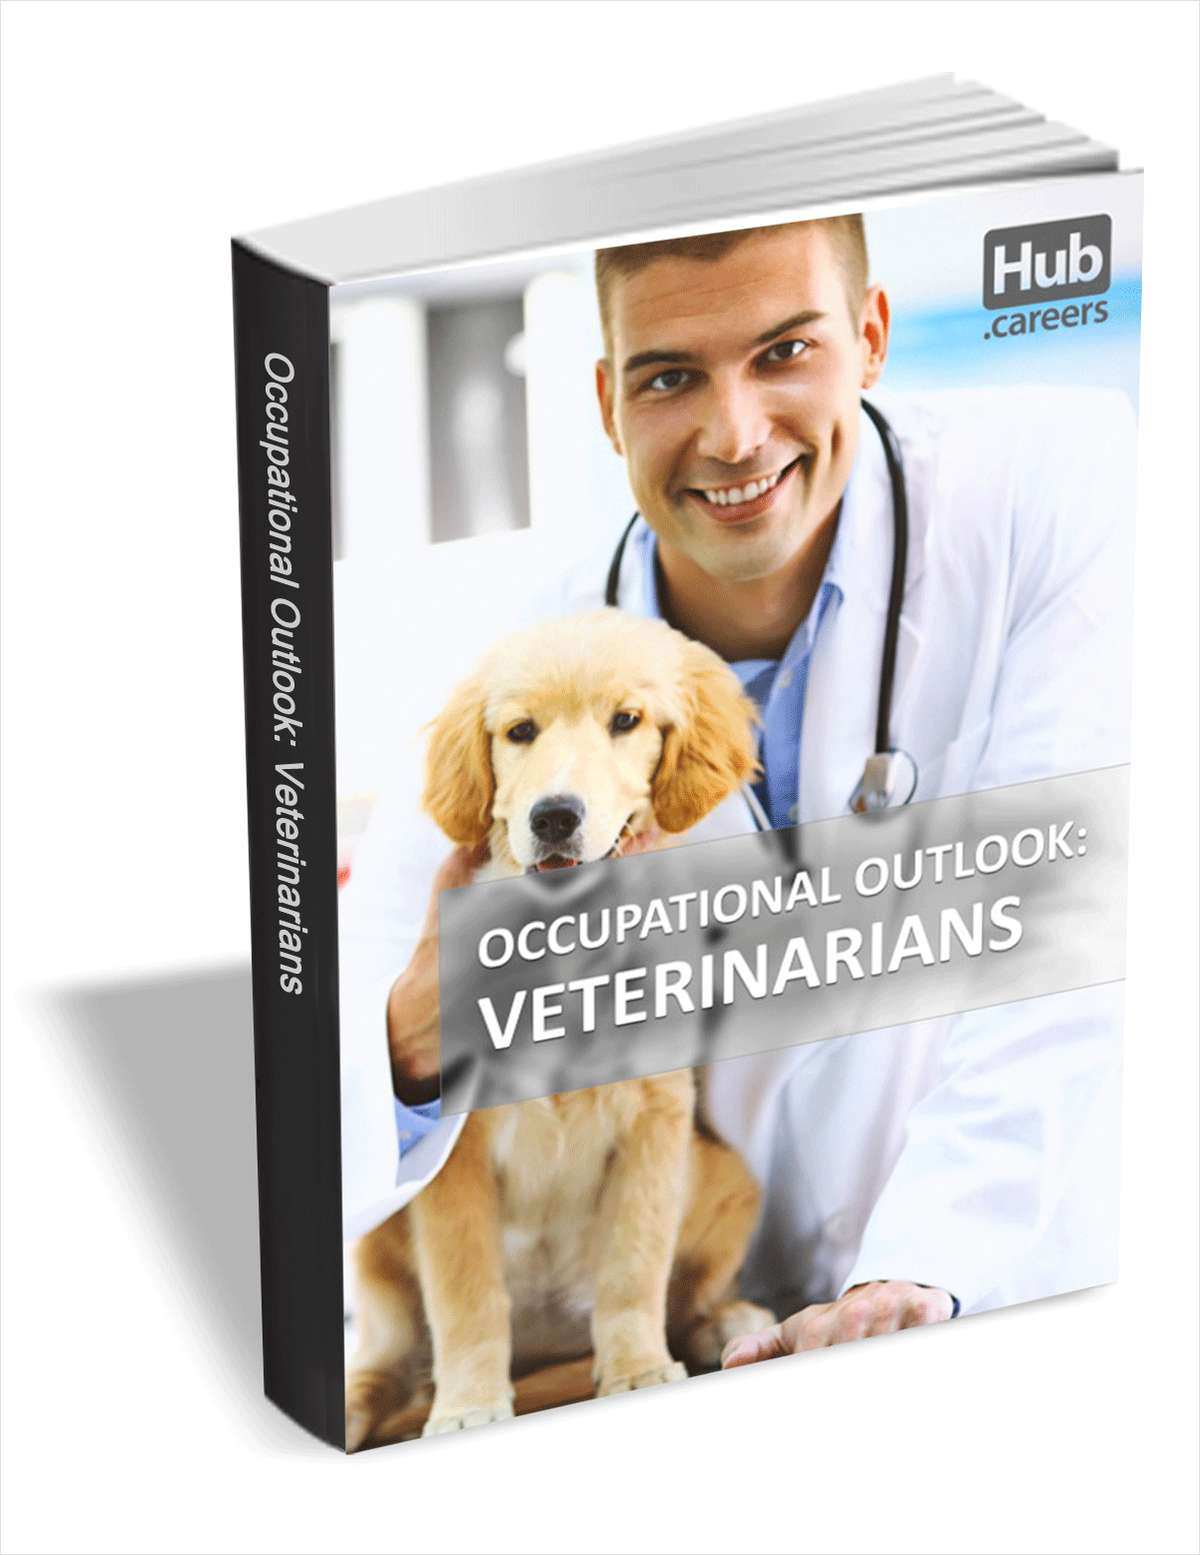 Veterinarians - Occupational Outlook